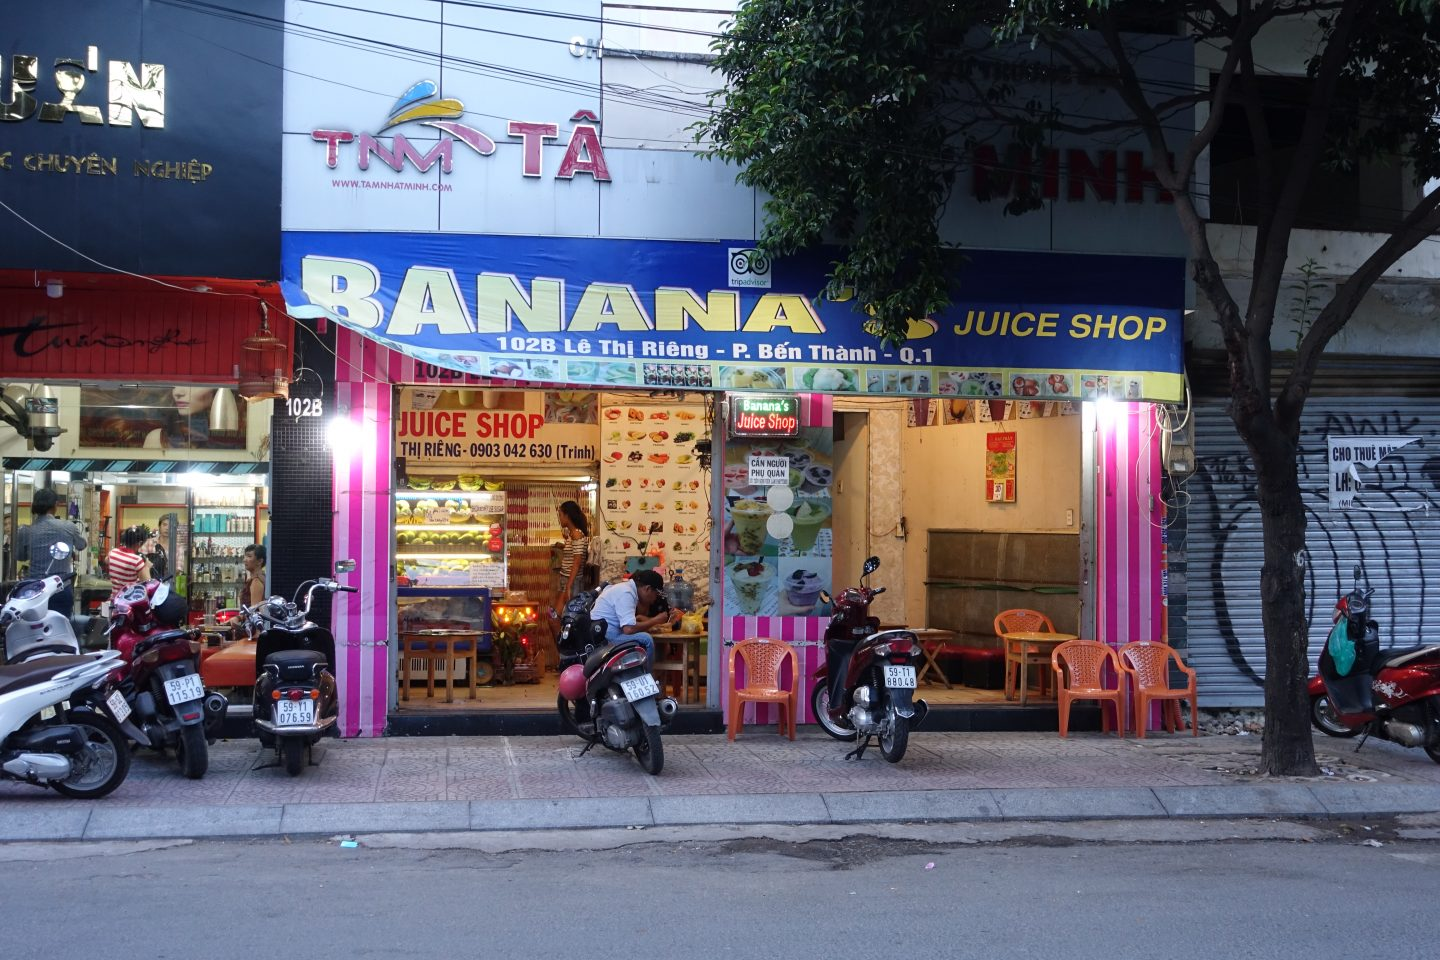 banana's juice shop